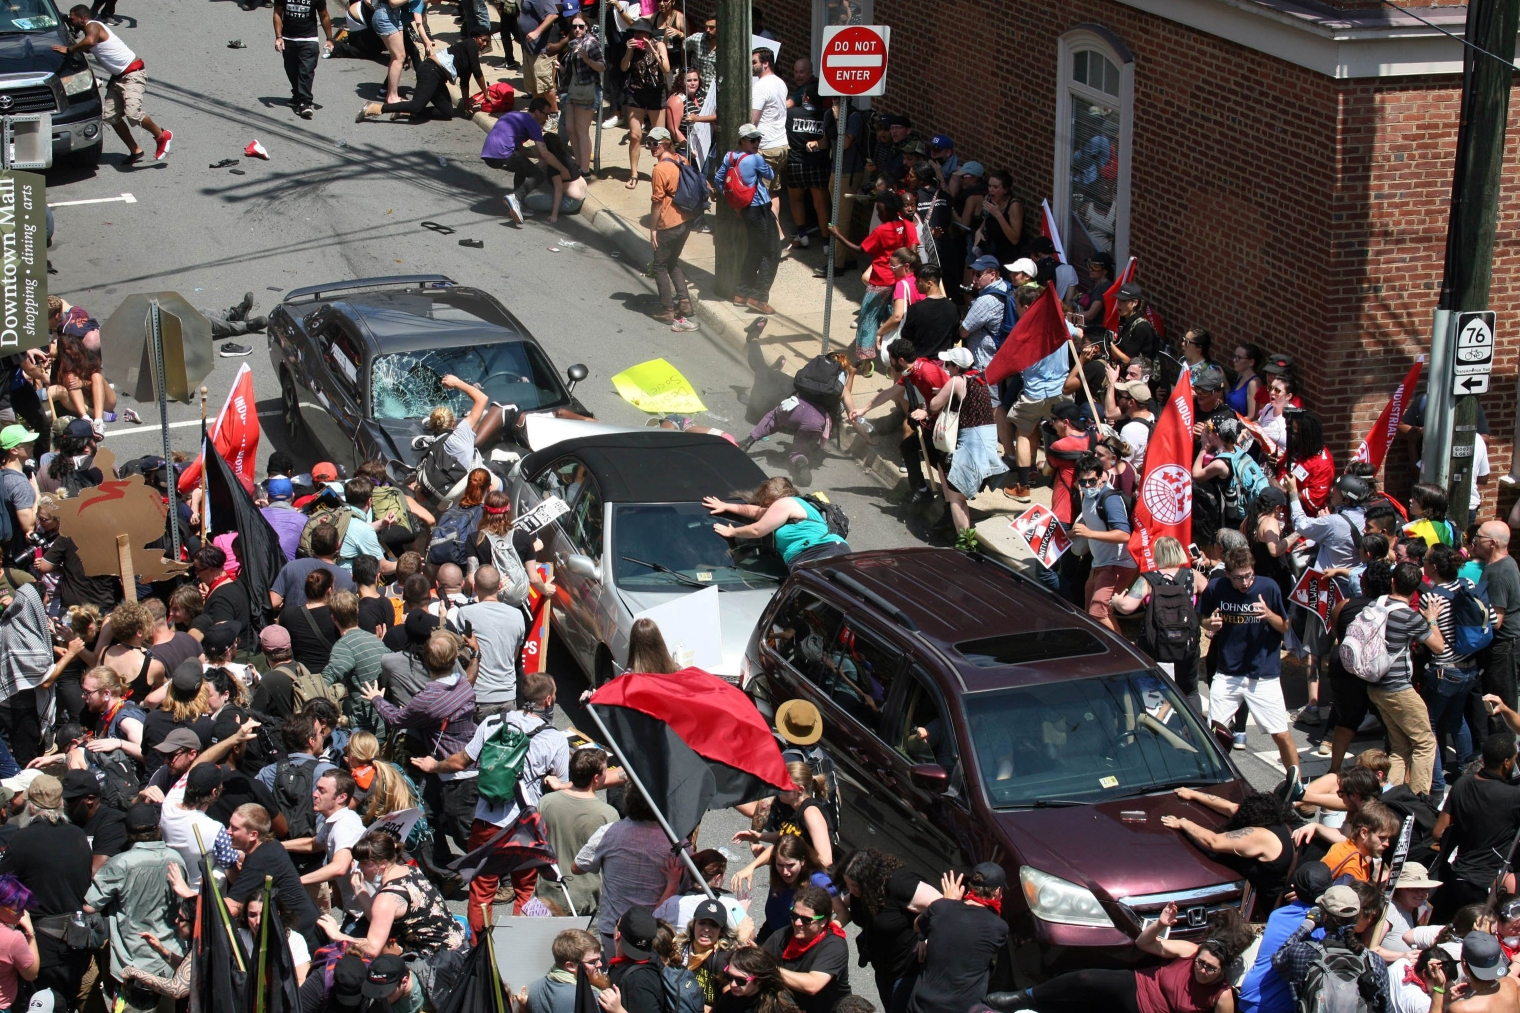 A gray car plows into pedestrians and vehicles as anti-white nationalism counter-protesters were marching through downtown Charlottesville, Va., on Aug. 12. The driver hit the knot of cars and people at high speed, then backed up and fled the scene.